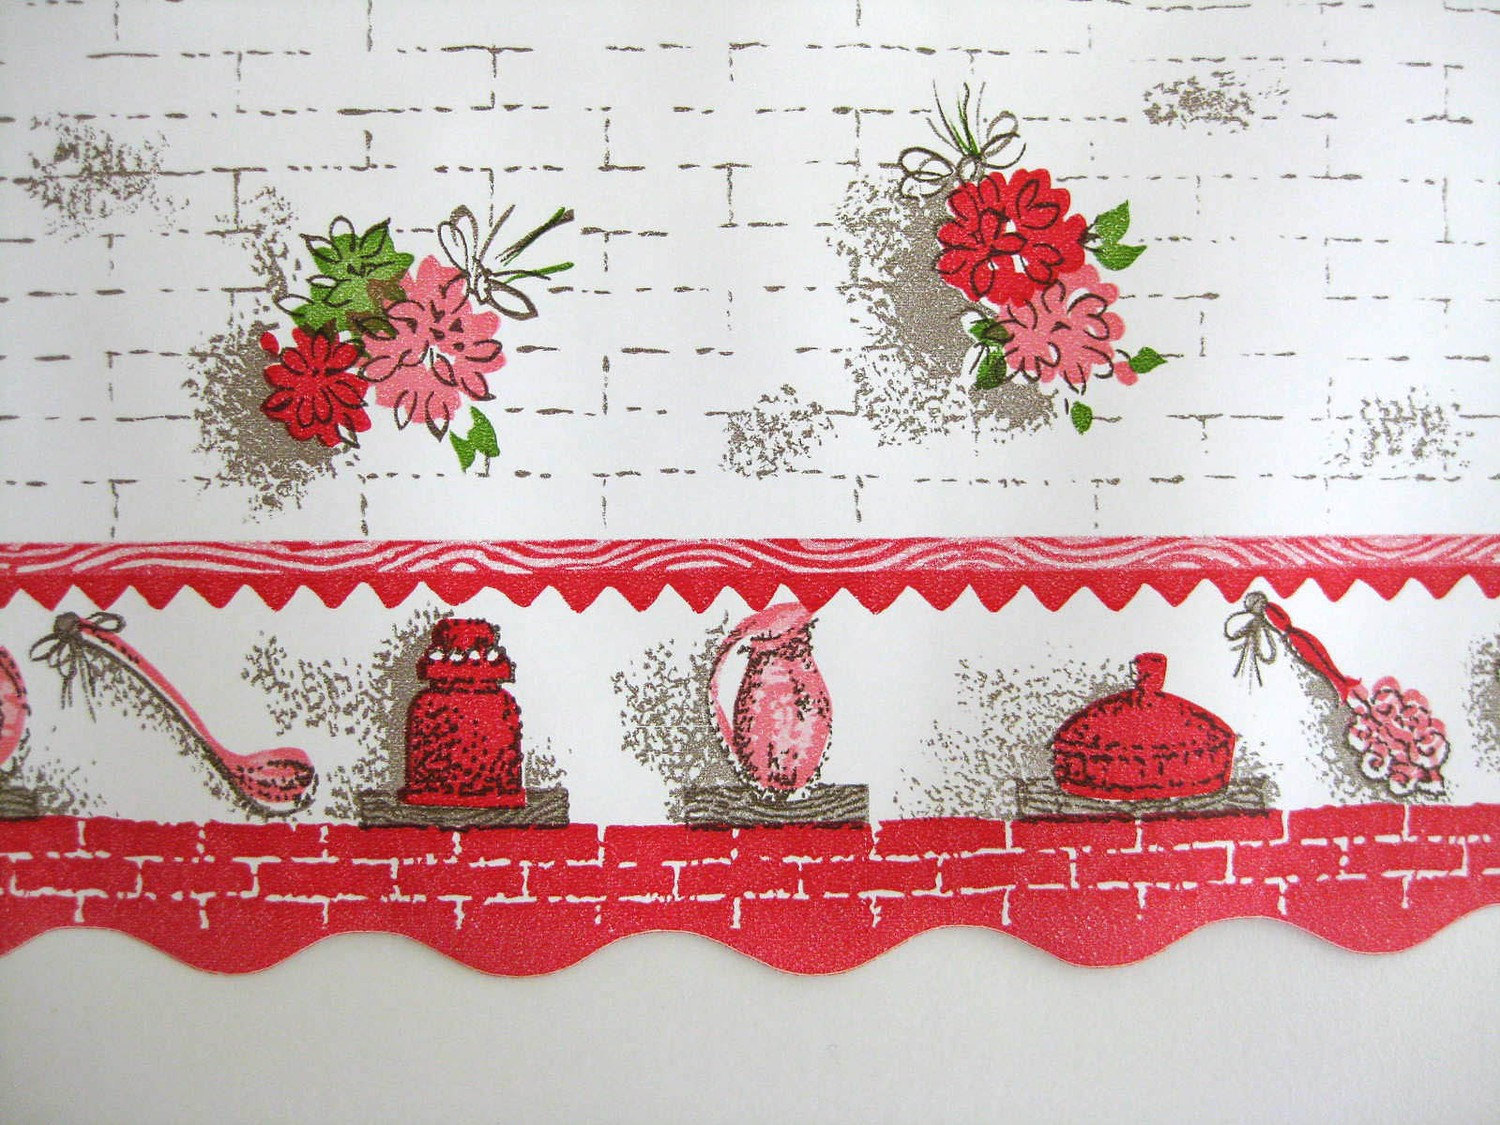 Free Download Floral Kitchen Wallpaper Border Wide Unused By